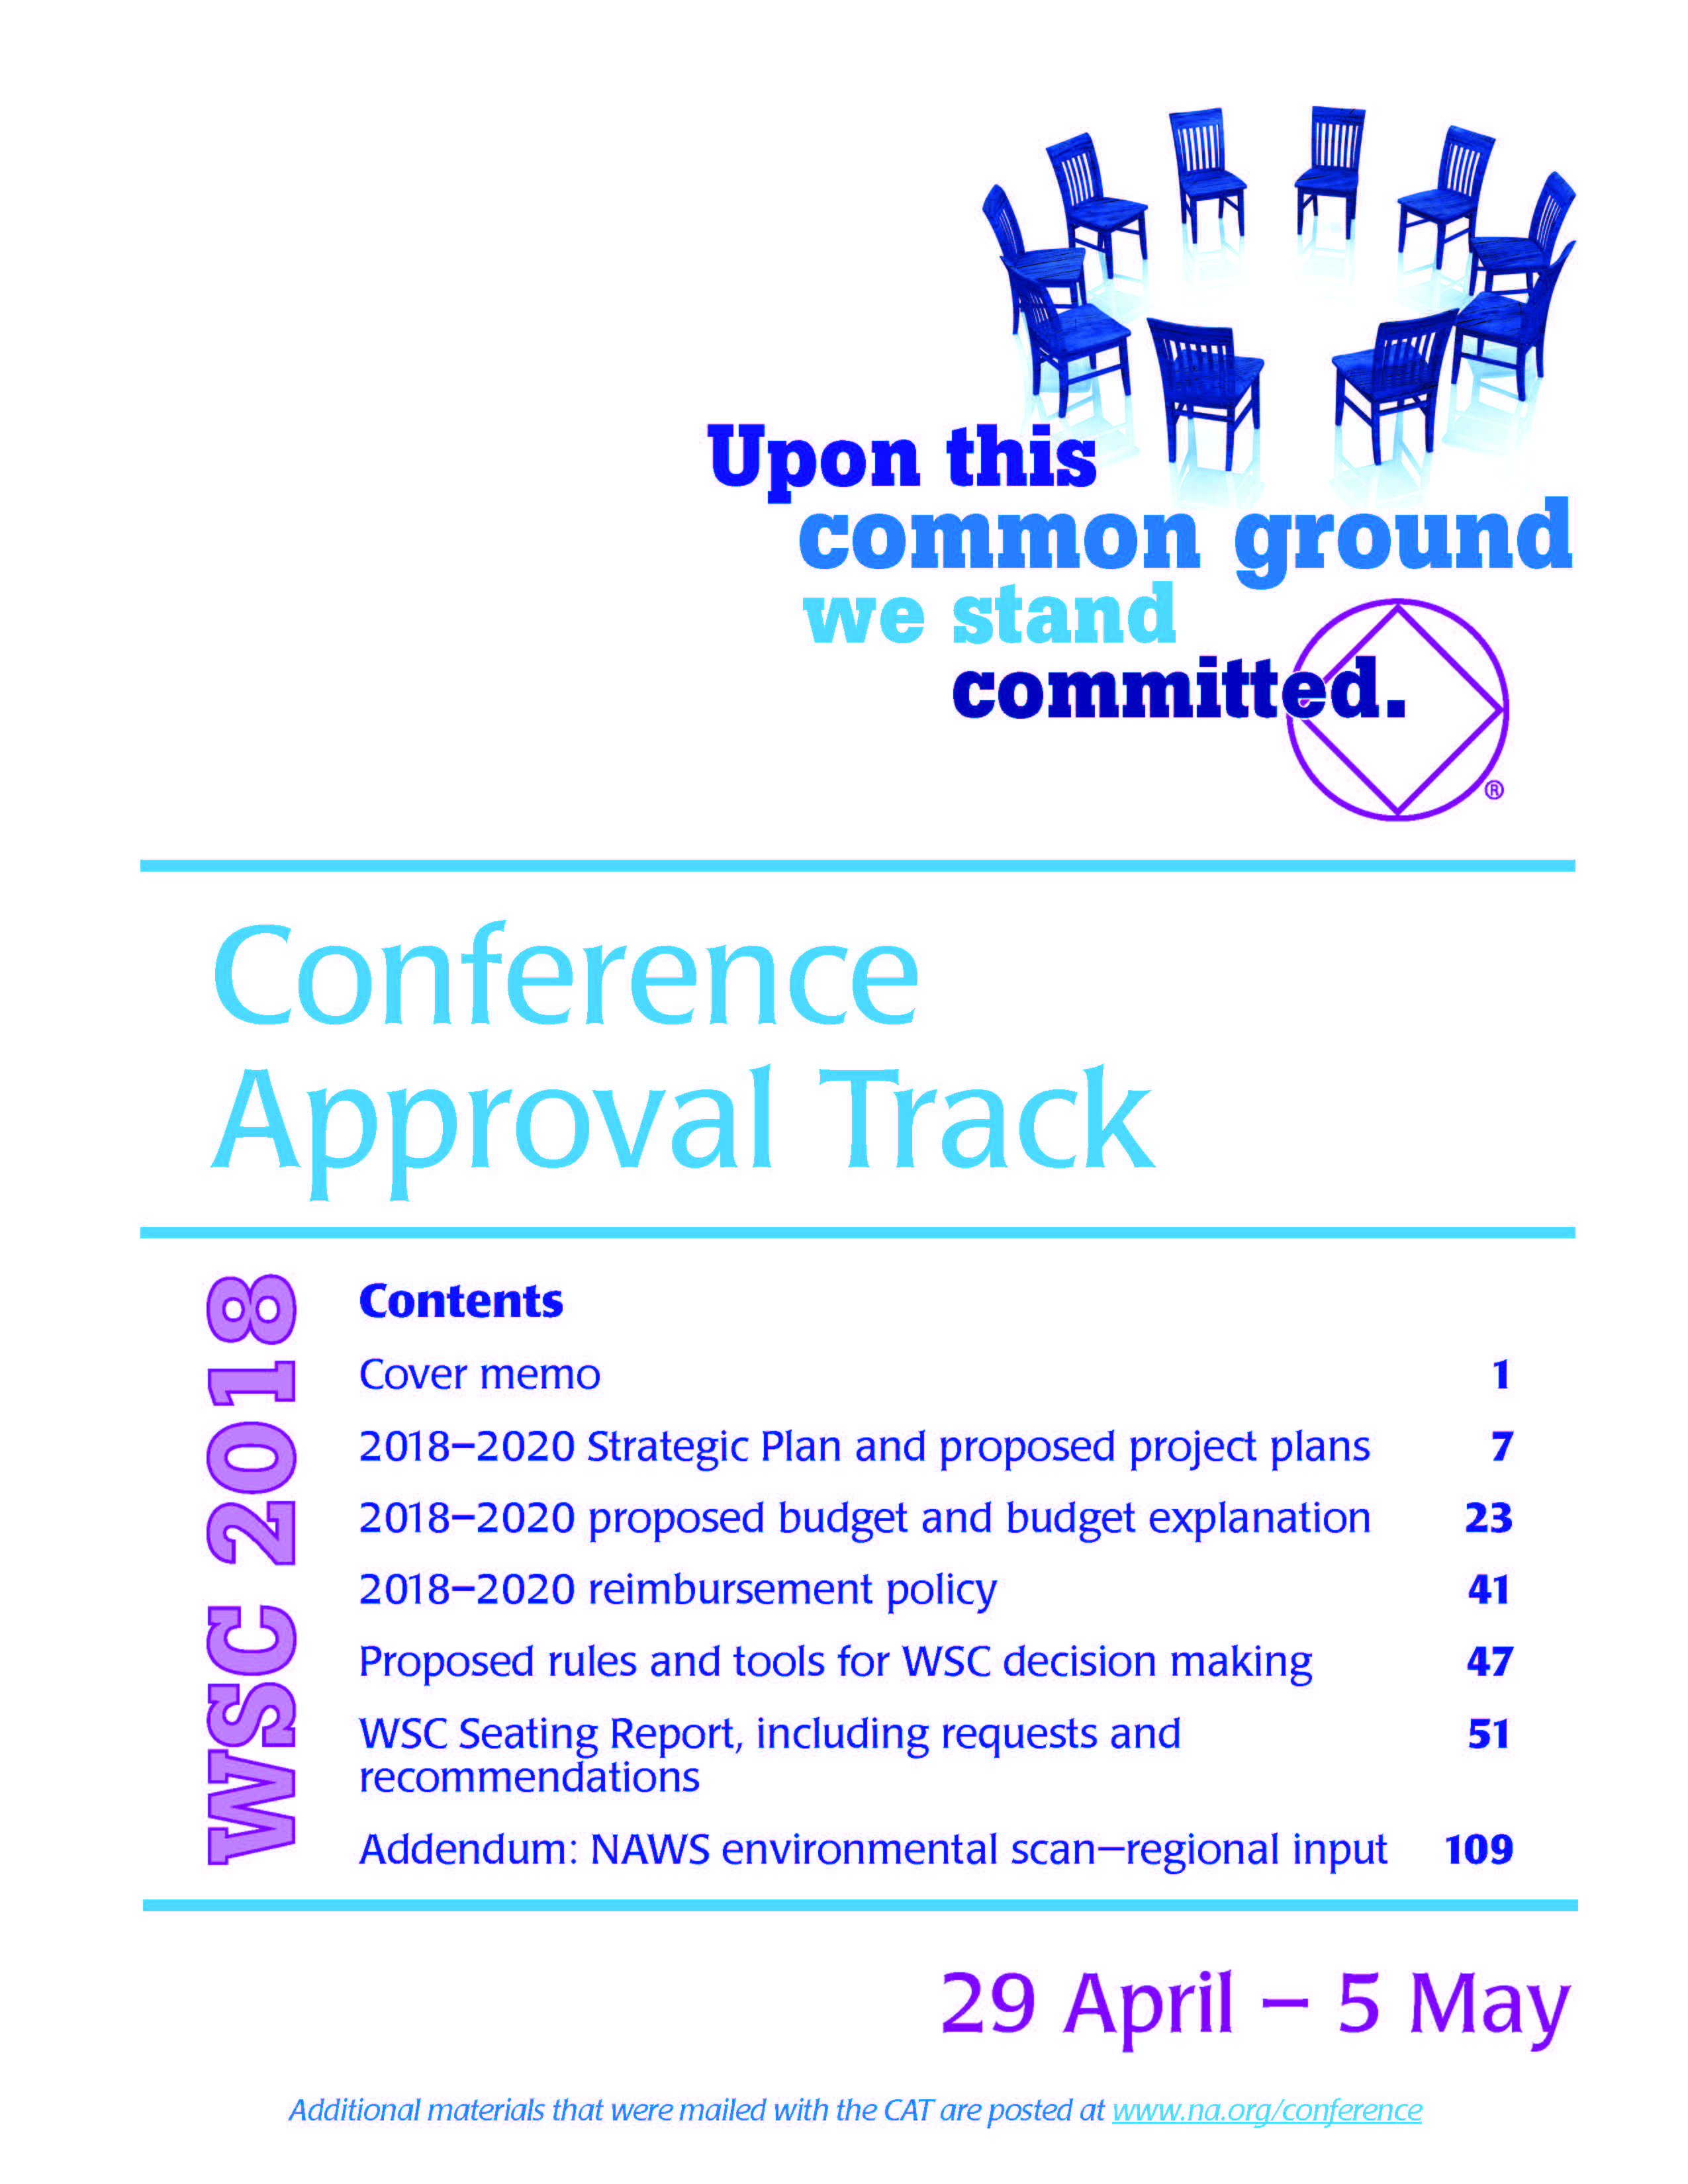 CONFERENCE APPROVAL TRACK